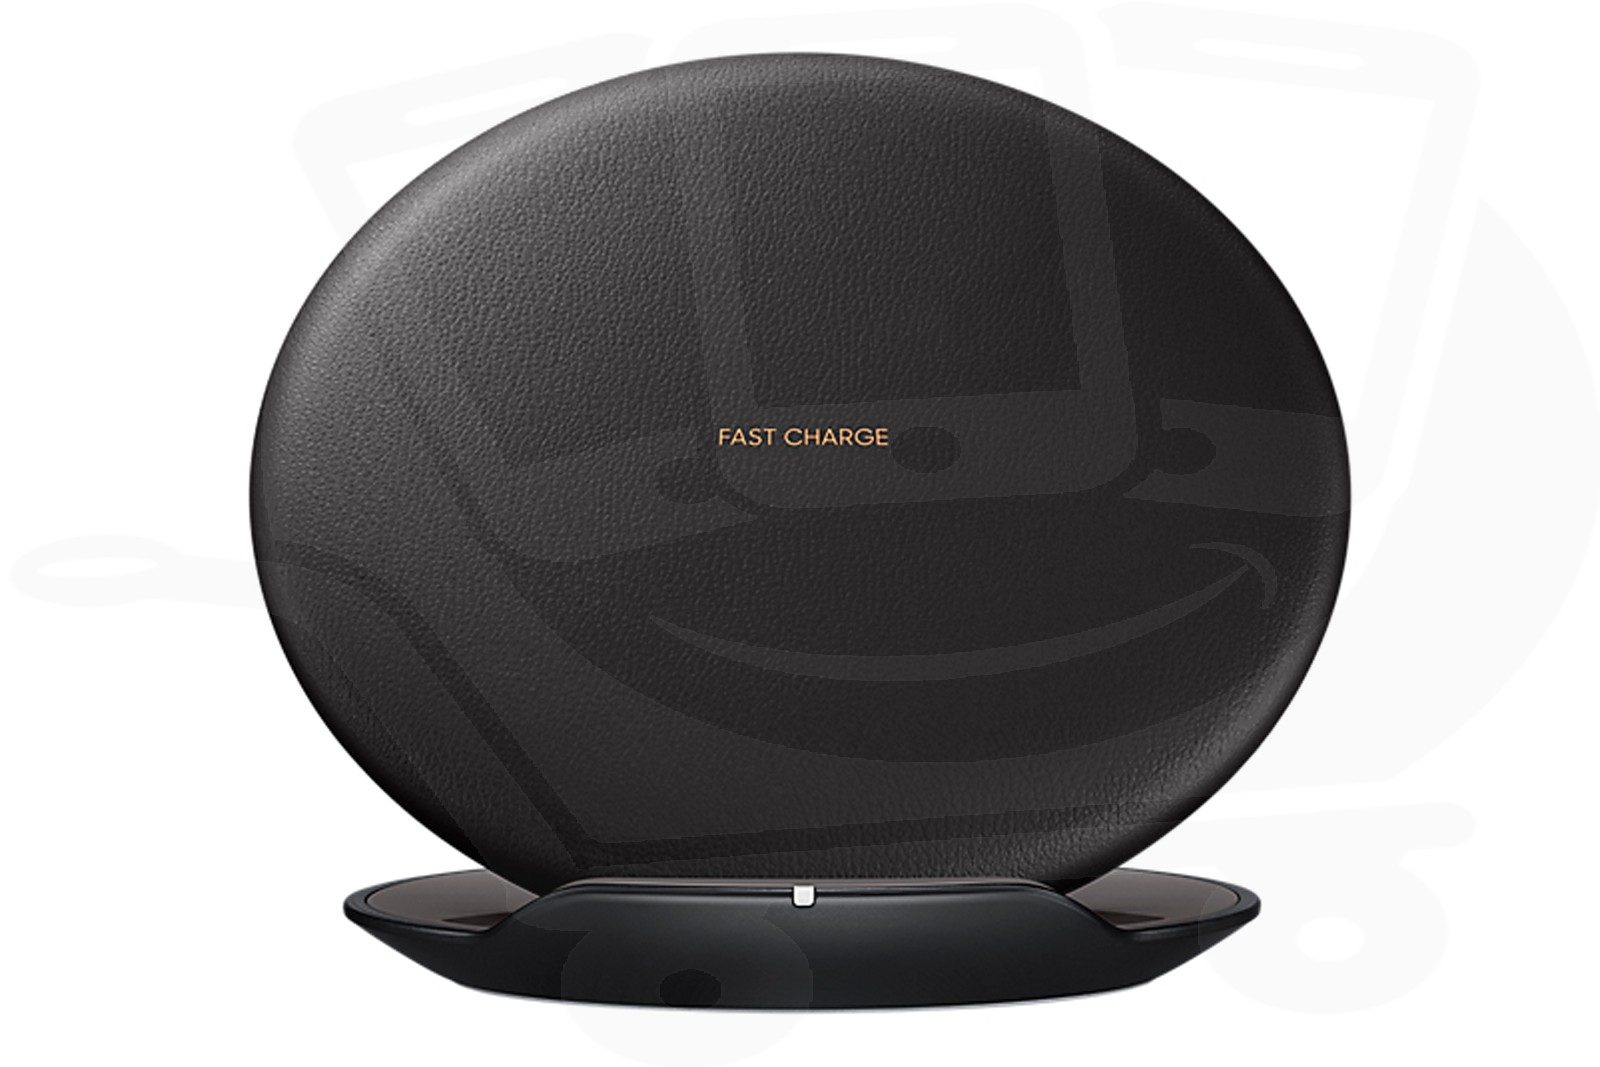 very official samsung galaxy s7 s7 edge wireless charger pad black phone will have